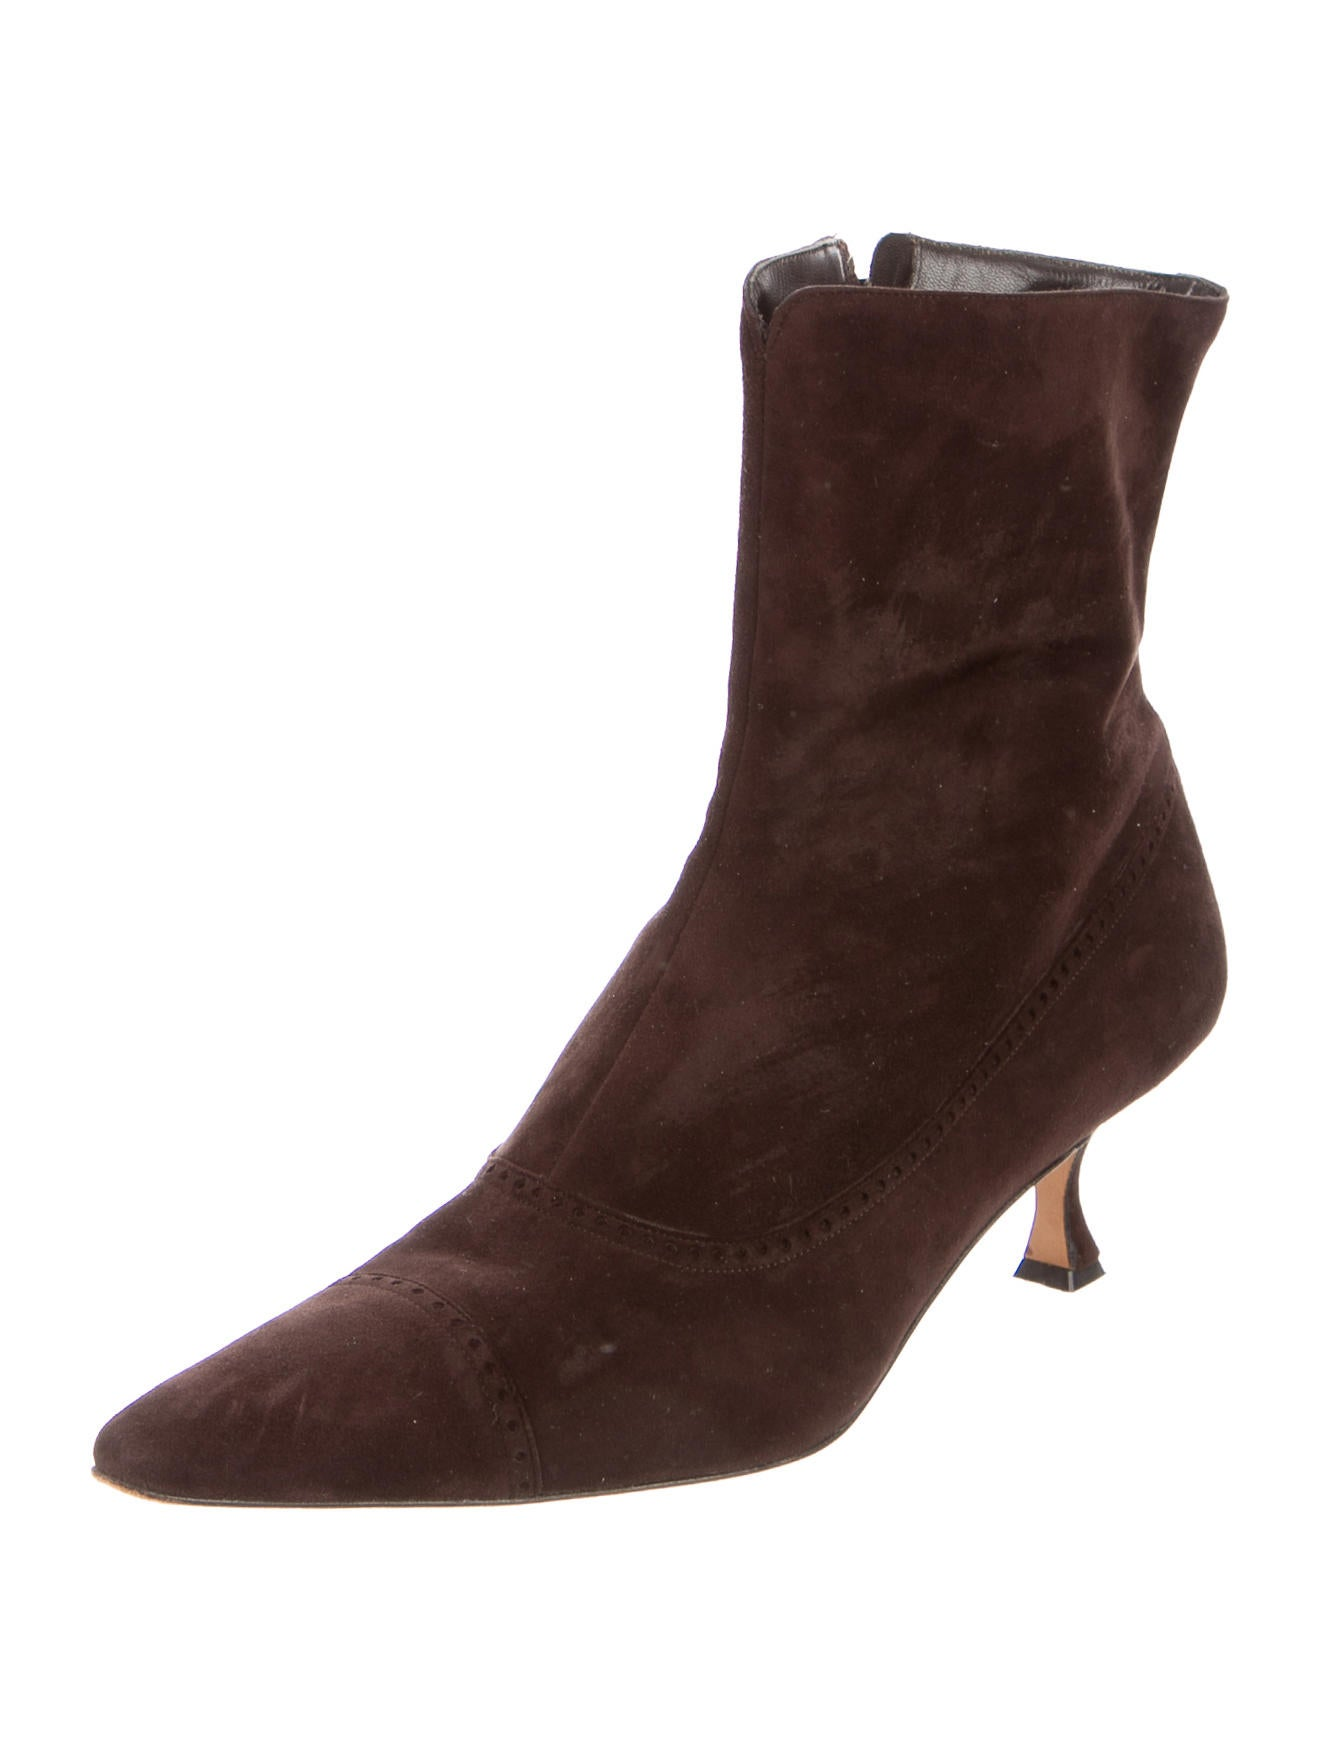 Manolo Blahnik Suede Pointed-Toe Ankle Boots - Shoes ...